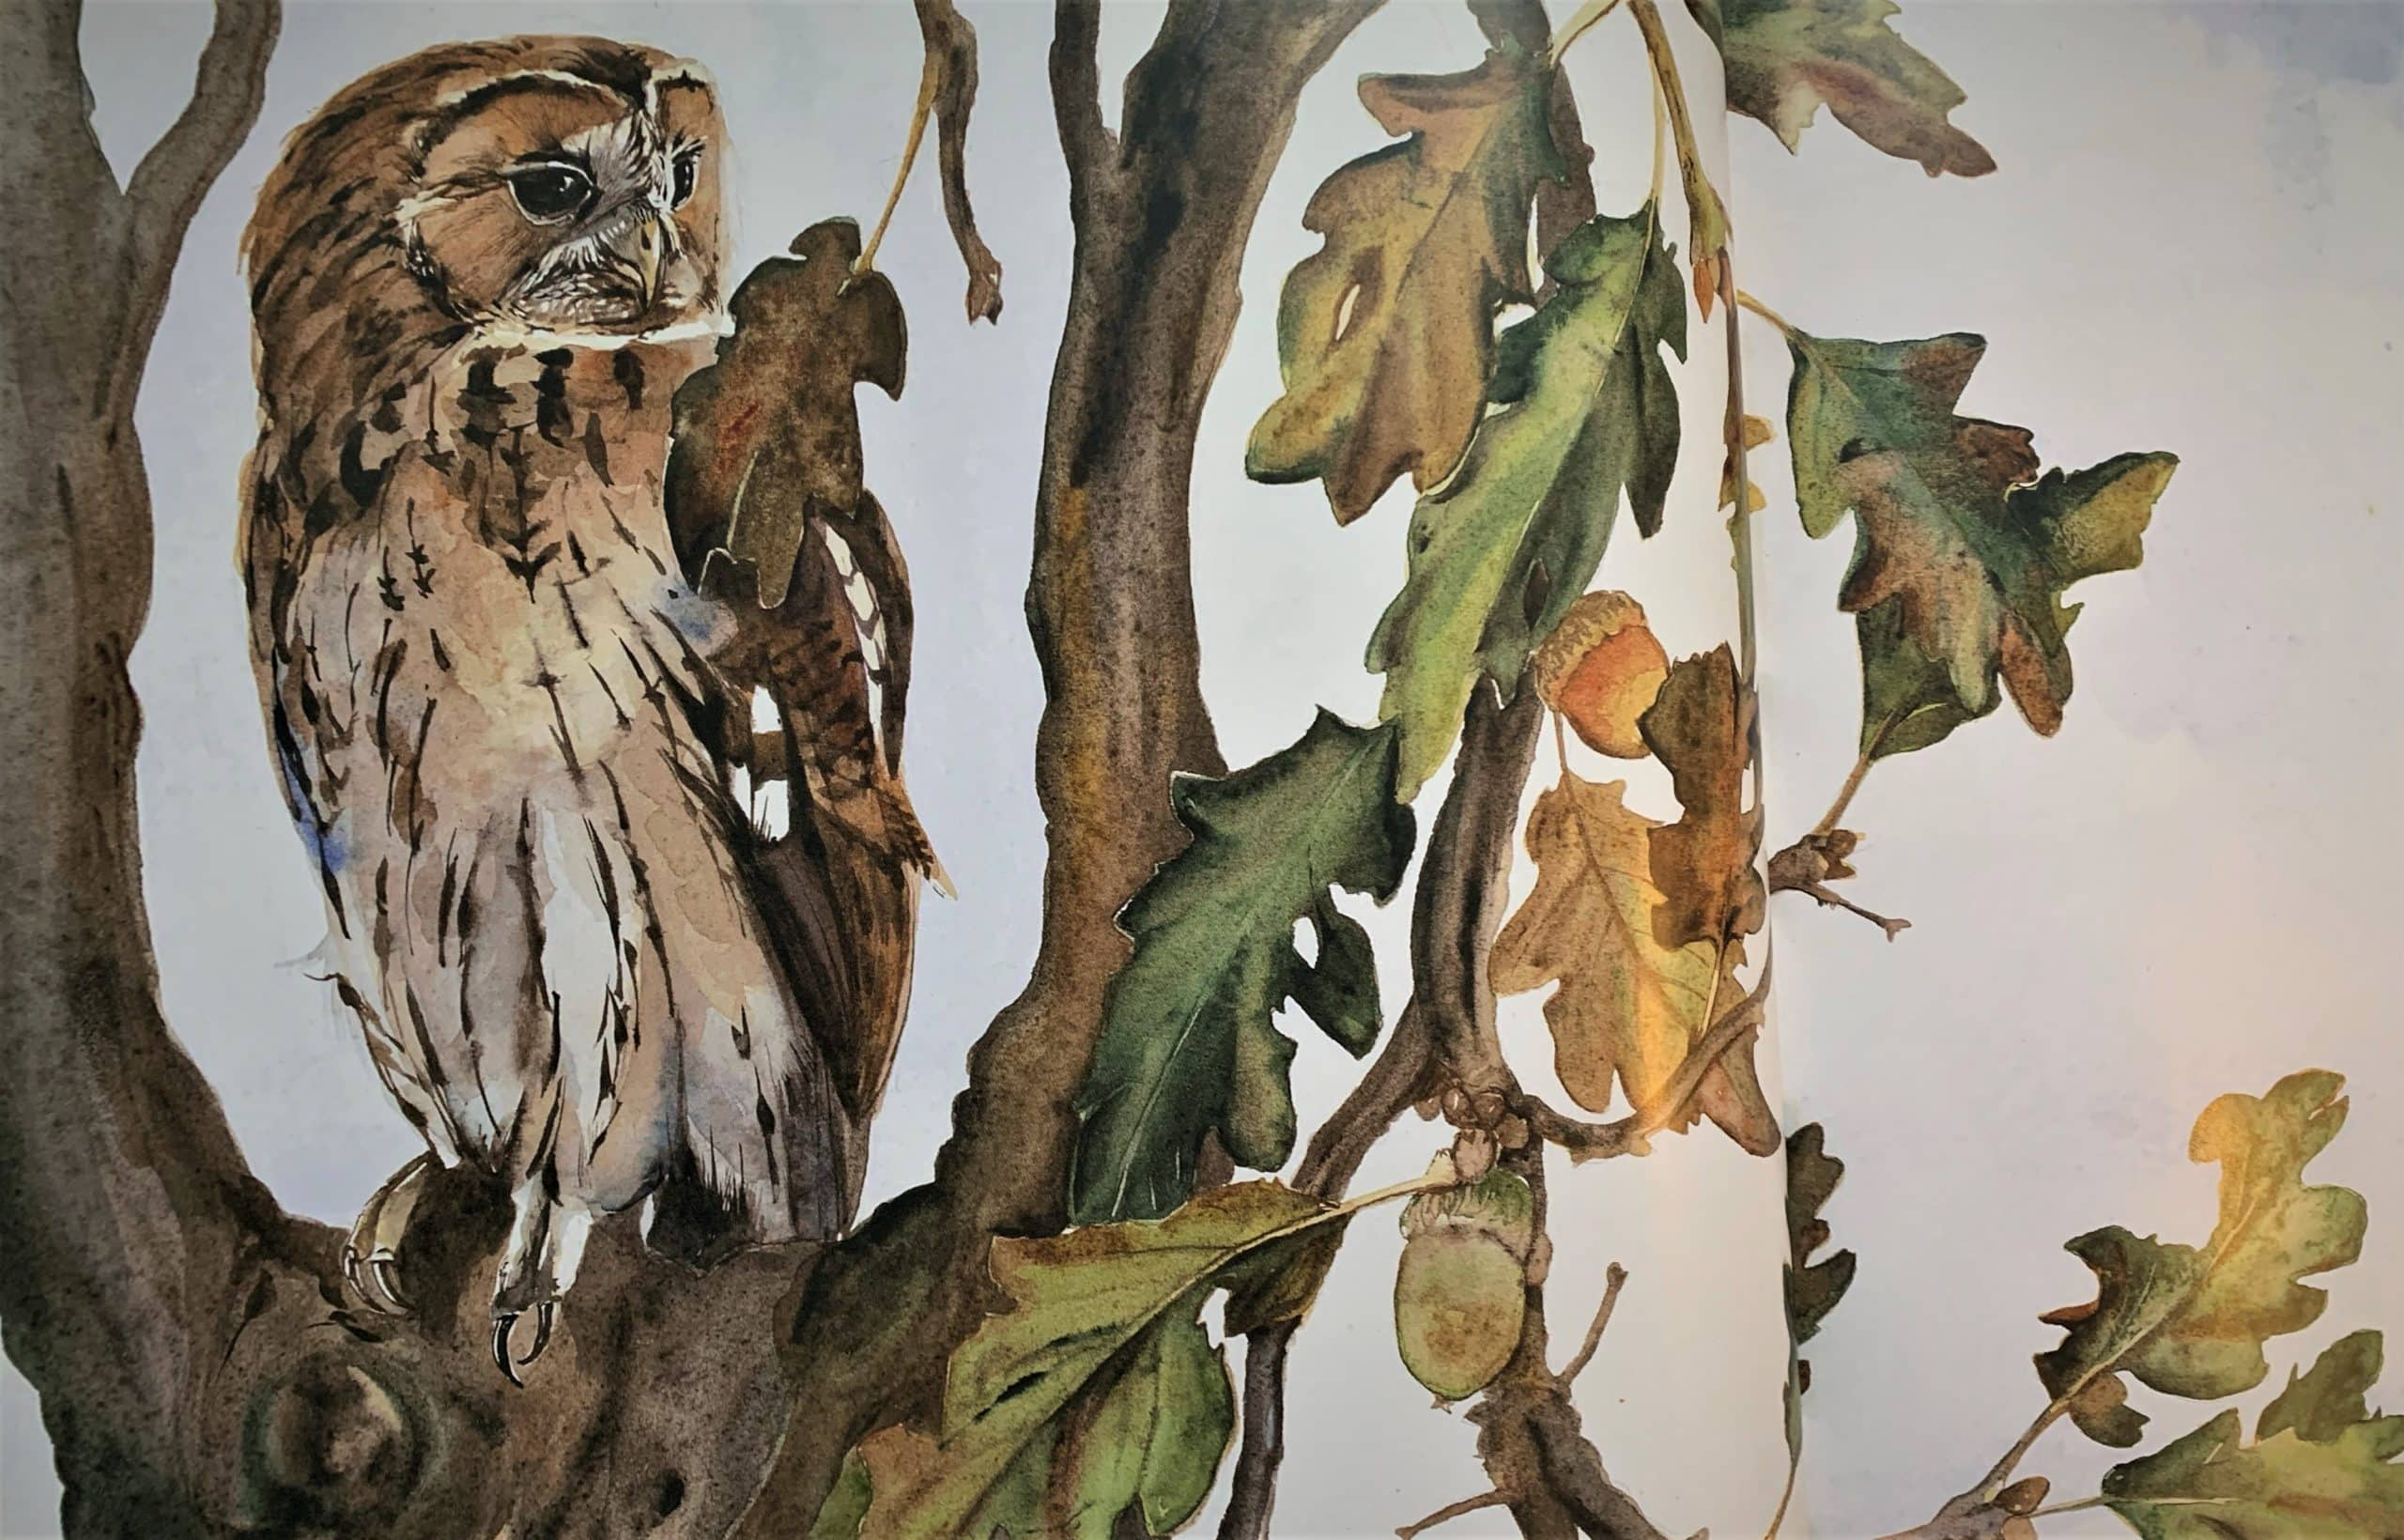 """Owl. Illustration by Jackie Morris in """"The Lost Words"""" in the Examined Life Library."""